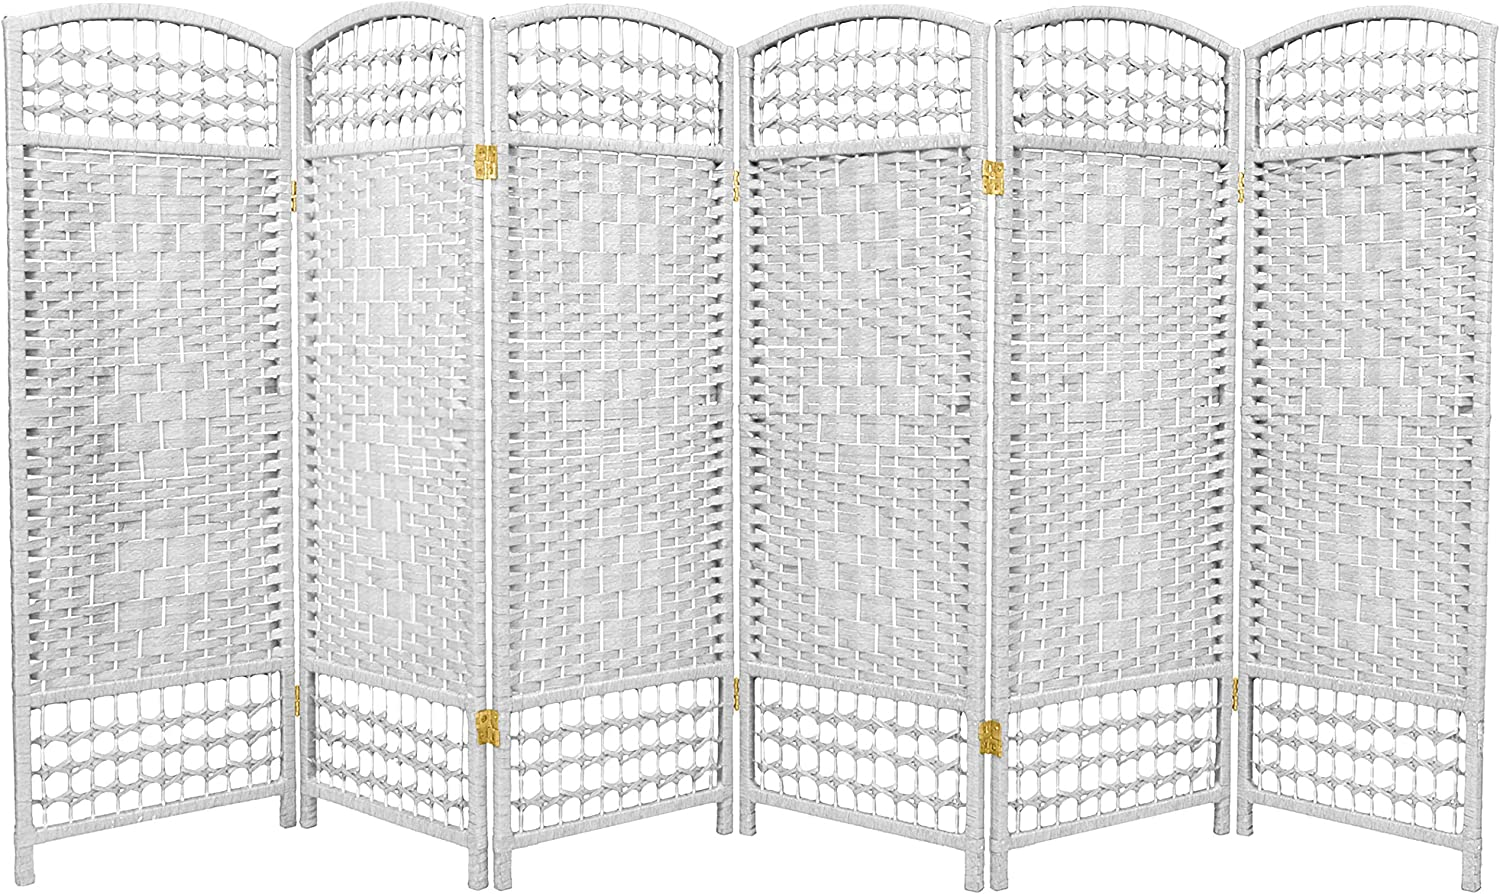 Oriental Large special price !! Furniture 4 ft. Tall Fiber Divider - New Orleans Mall White Weave Room